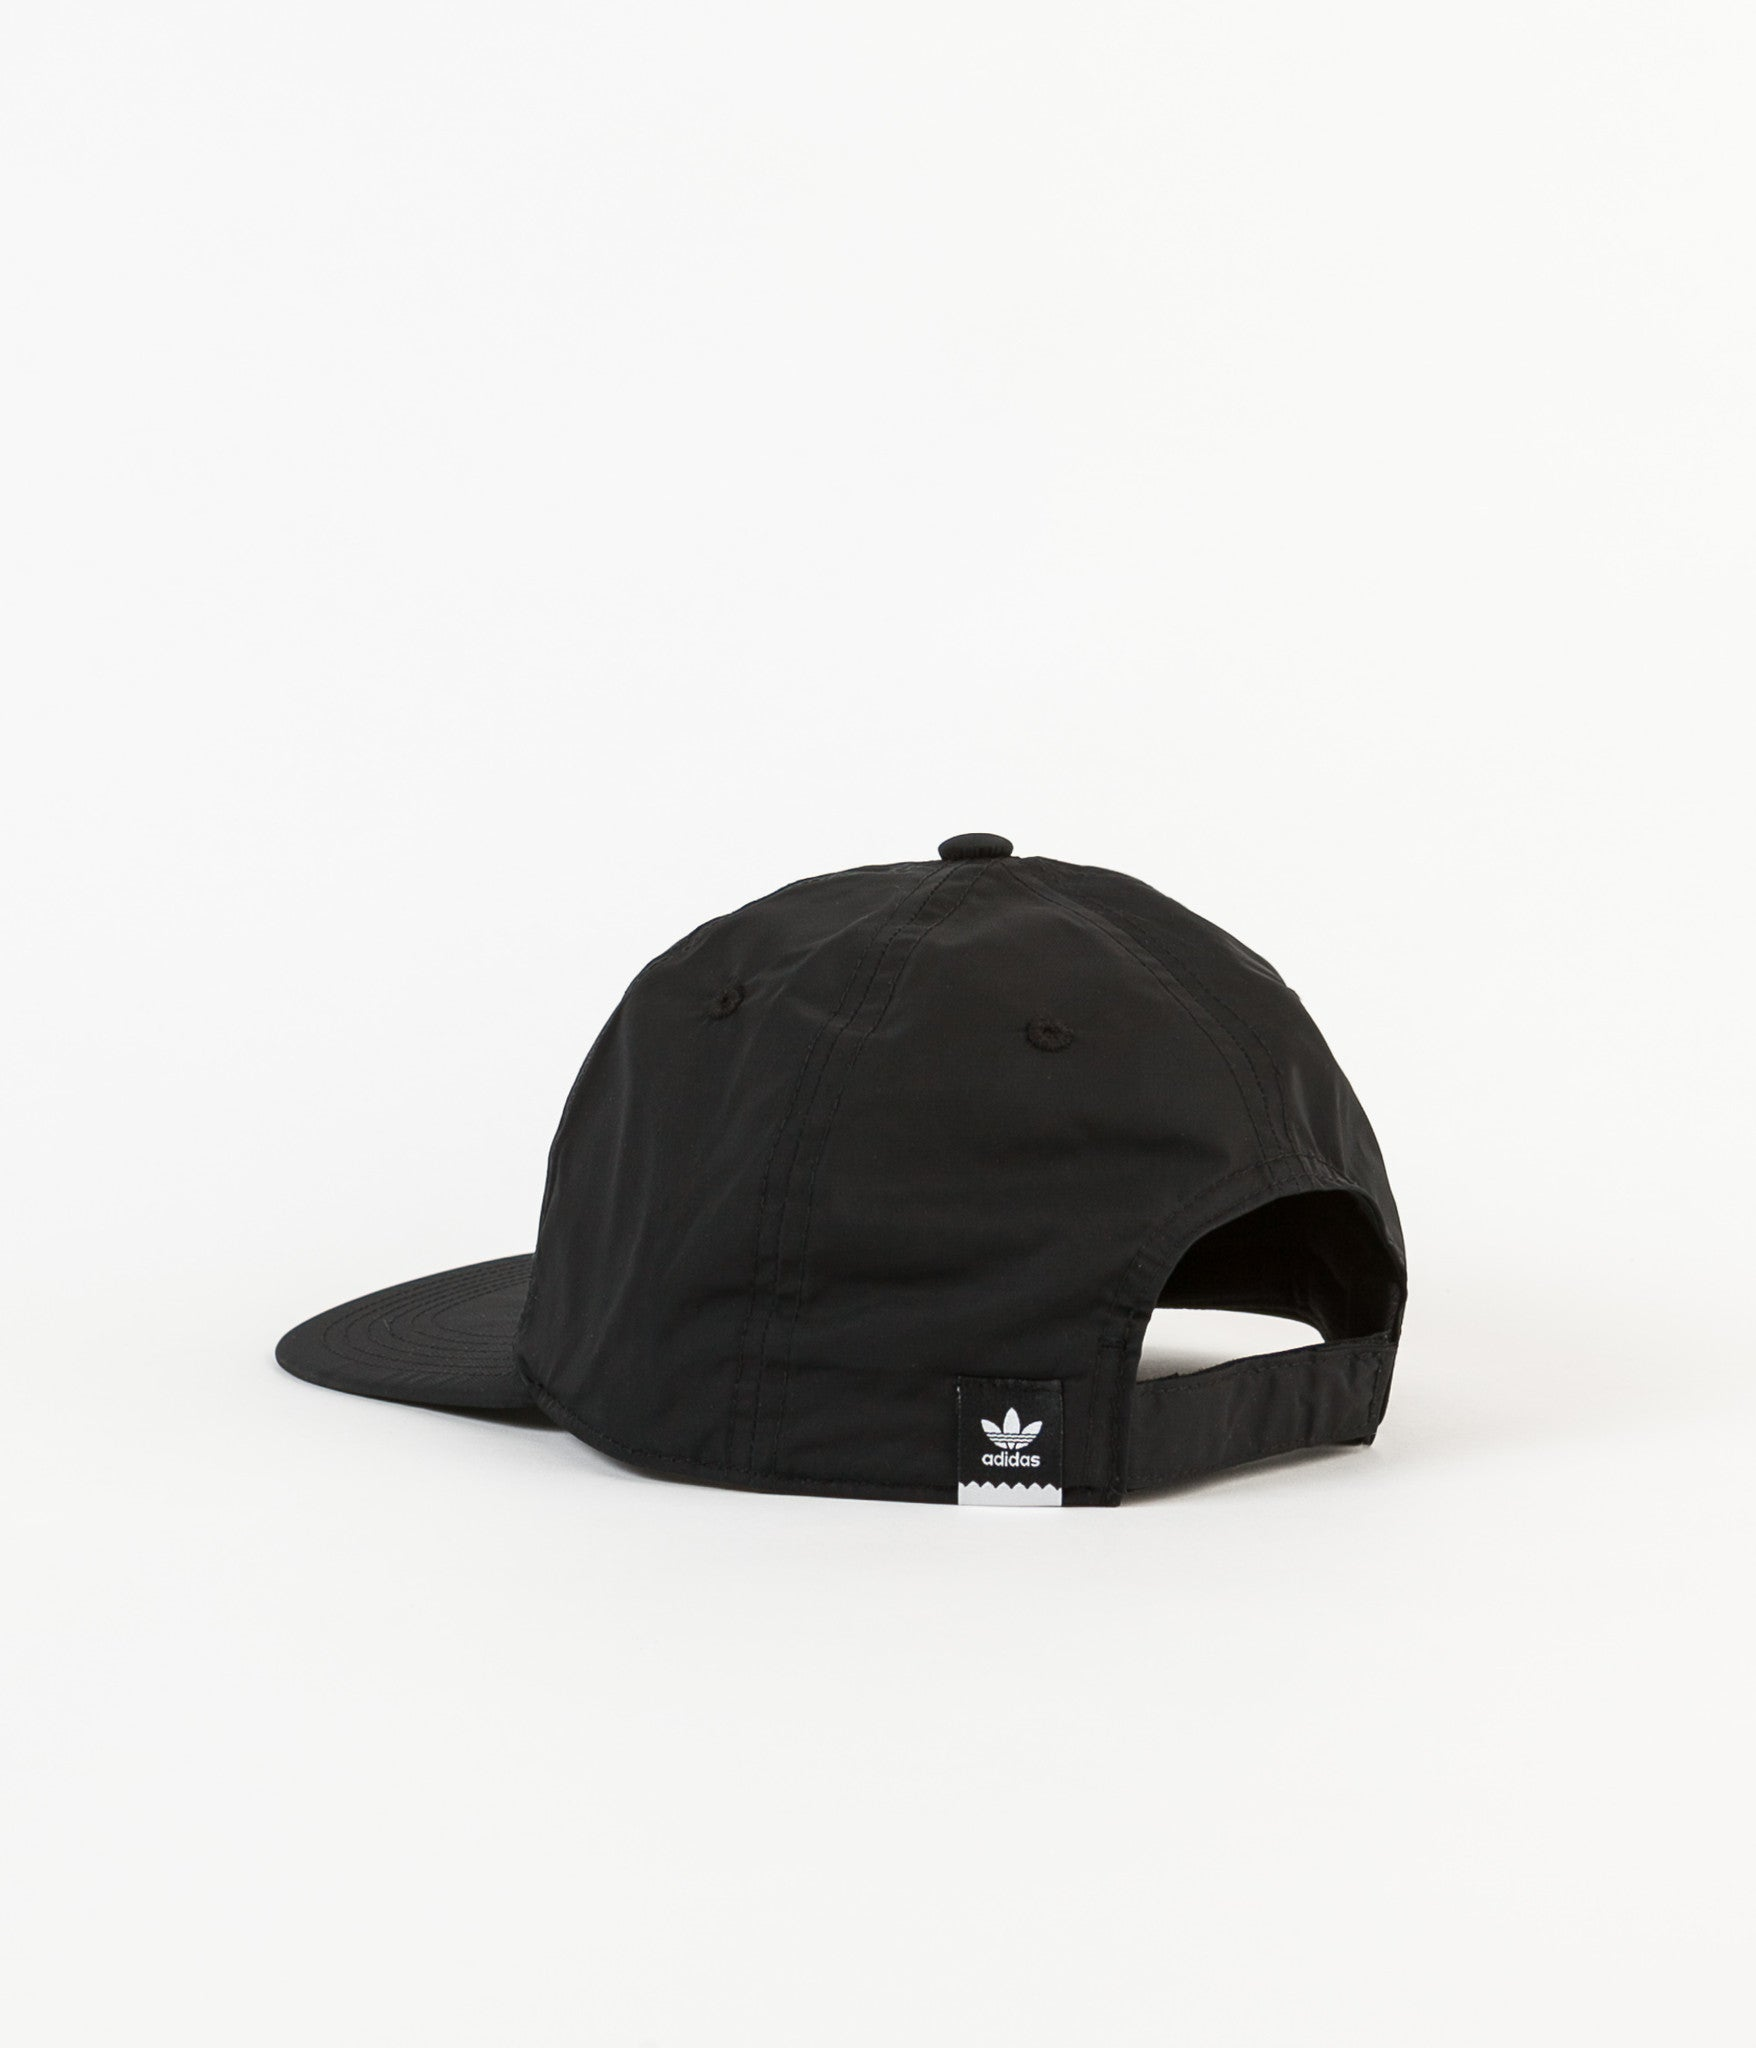 Adidas Floppy 6 Panel Cap - Black